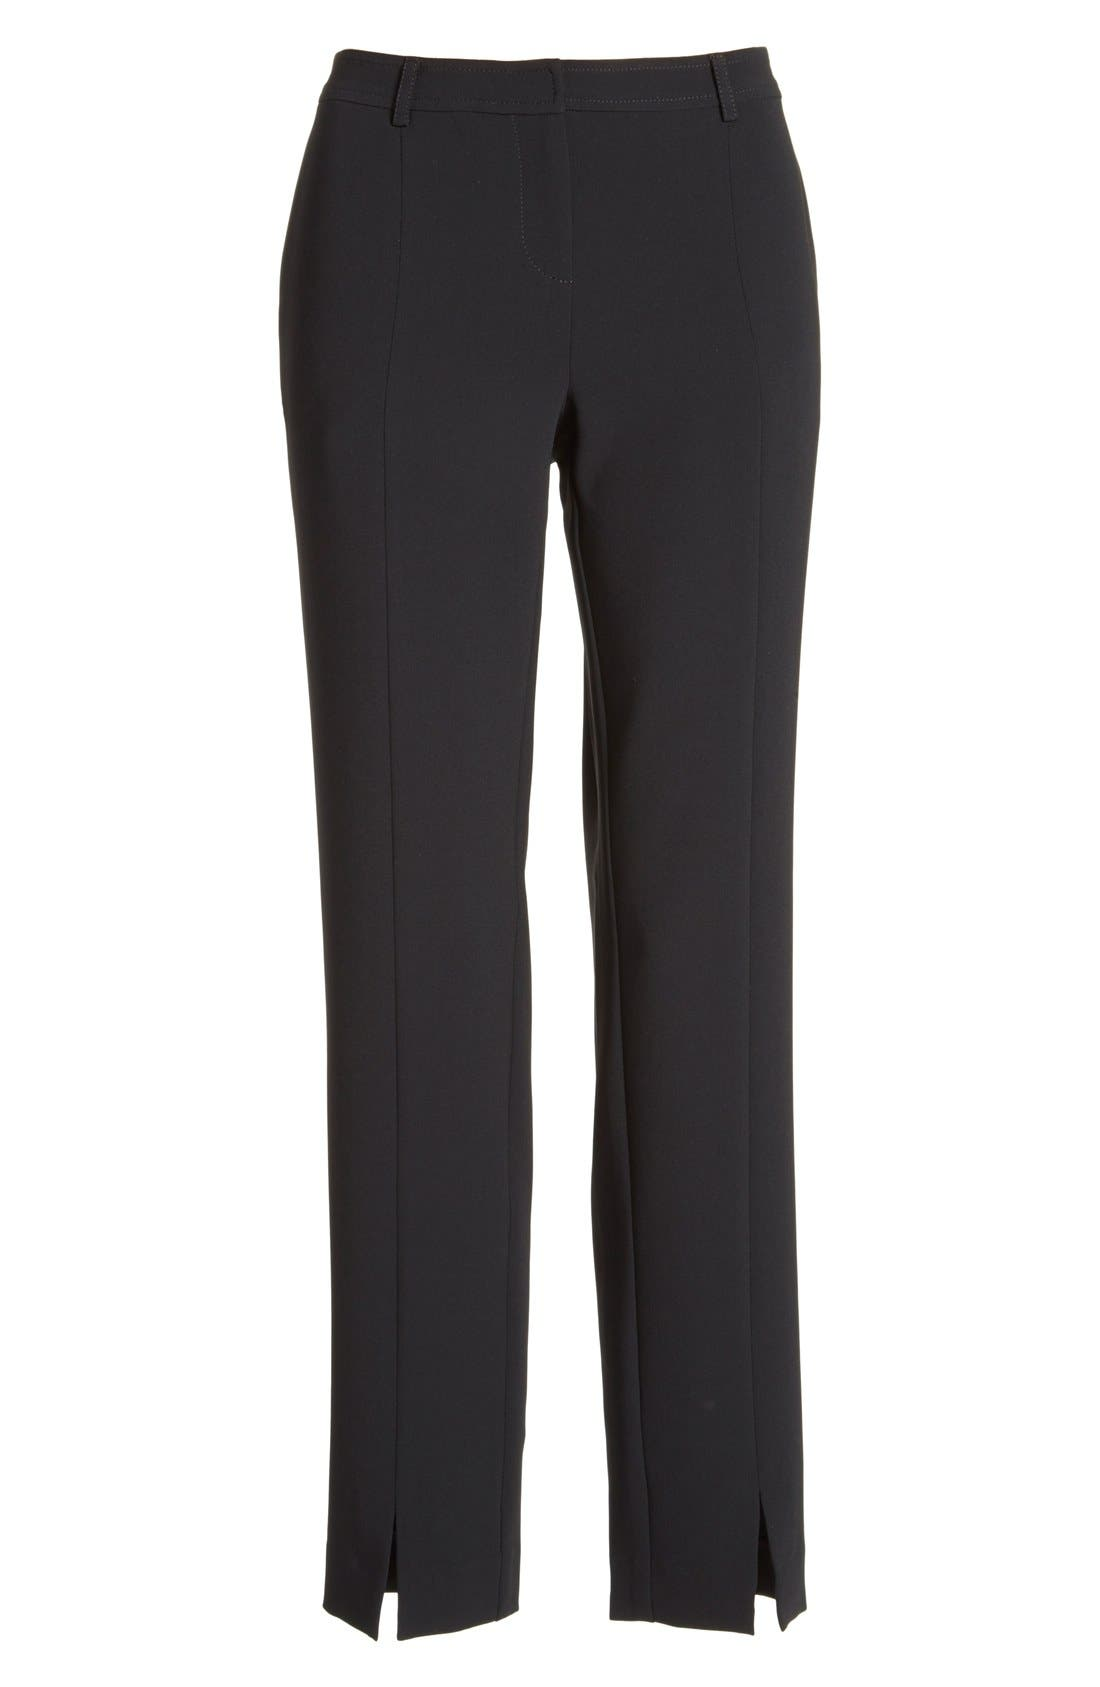 Alternate Image 4  - St. John Collection 'Jennifer' Crepe Marocain Ankle Pants